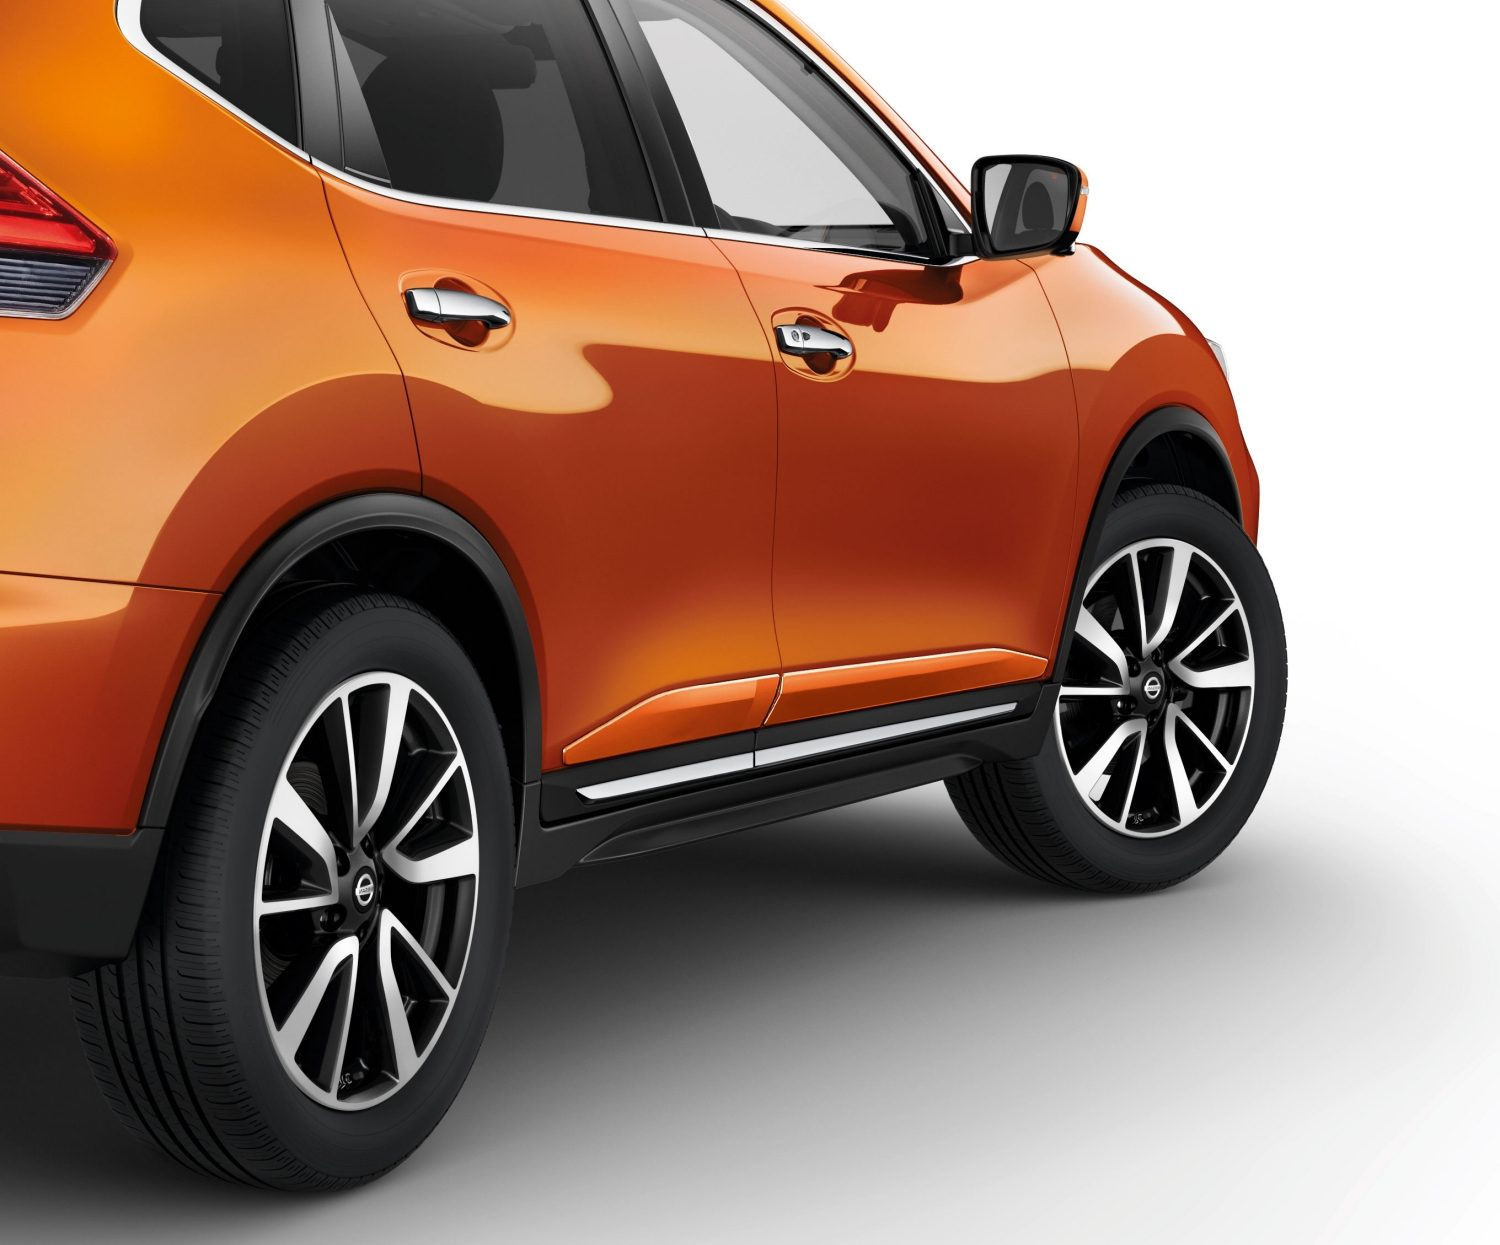 nissan-design-1.ximg.l_full_m.smart